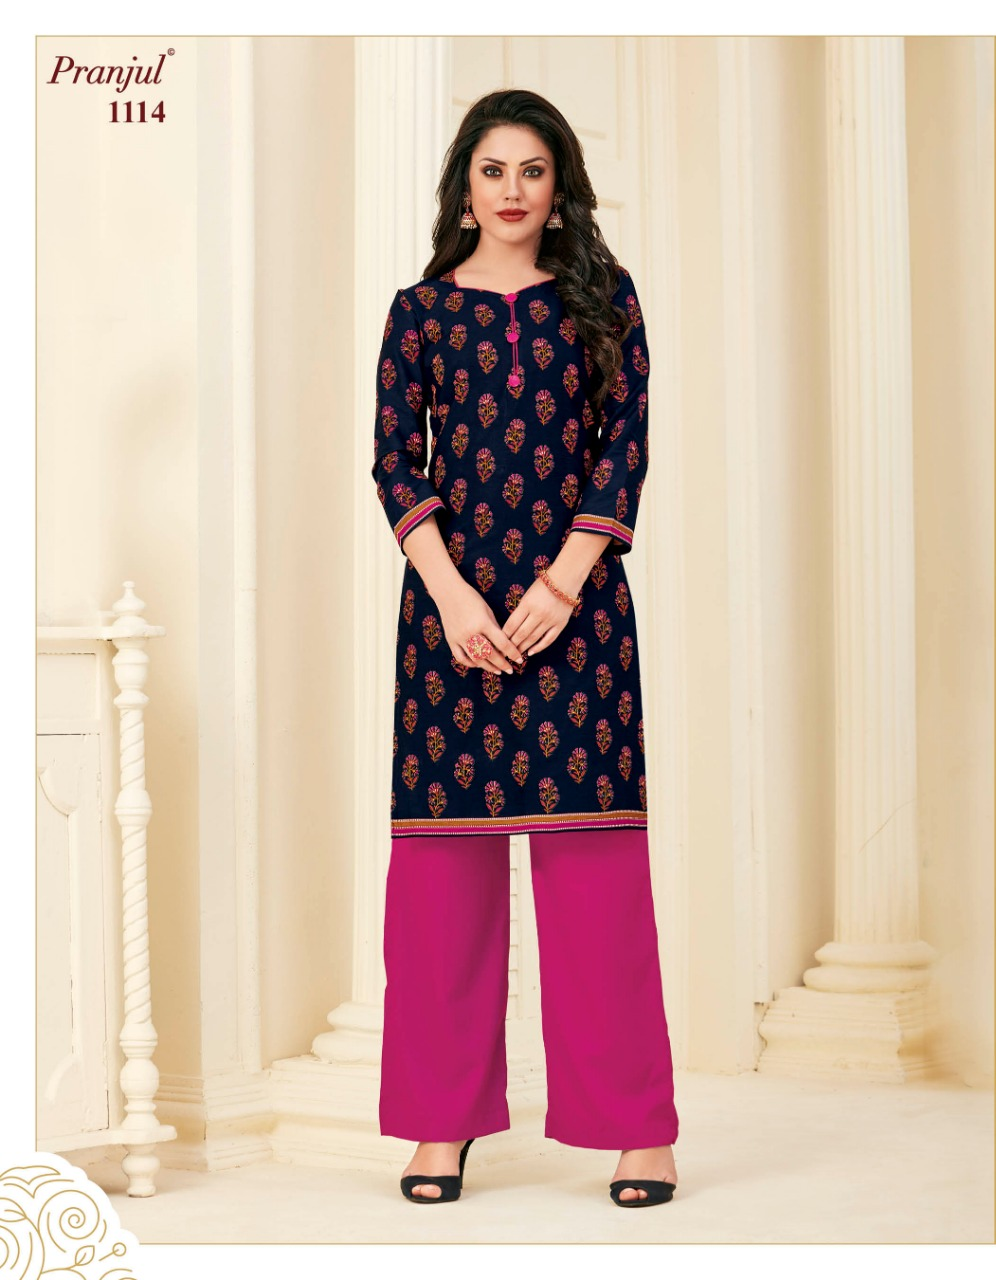 Pranjul Pari Vol 1 Kurti Wholesale Catalog 20 Pcs 21 - Pranjul Pari Vol 1 Kurti Wholesale Catalog 20 Pcs